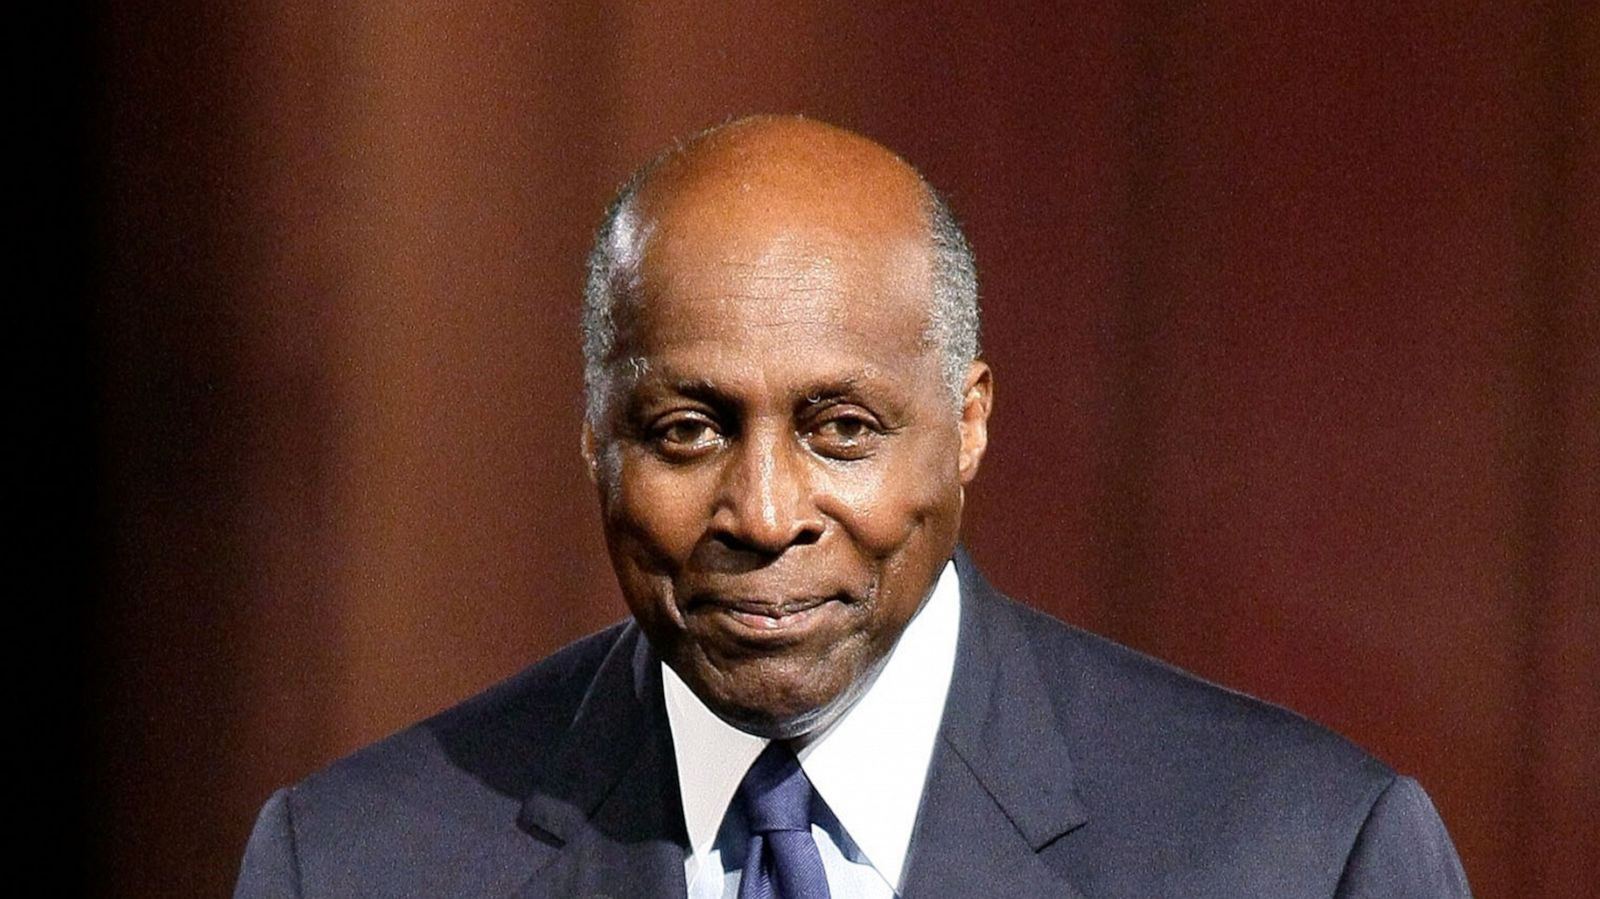 Vernon Jordan, Civil Rights Lawyer and Political Power Broker, Dies at 85